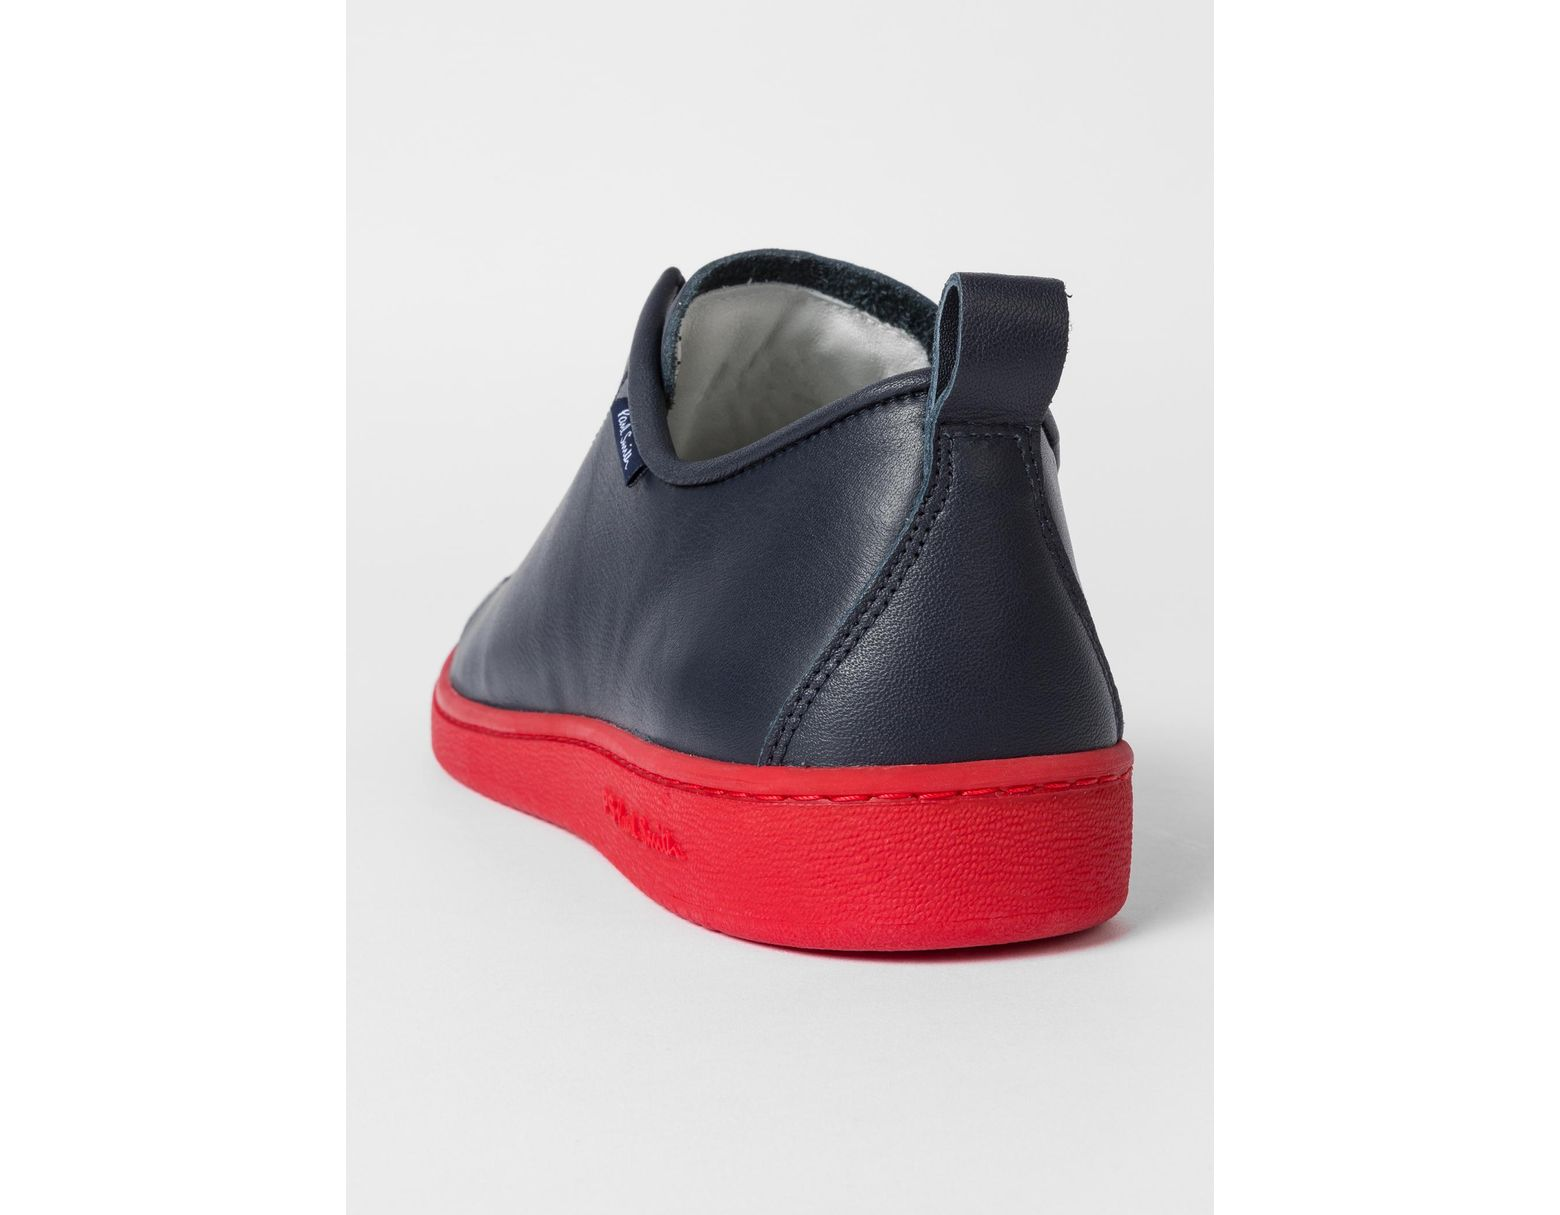 separation shoes e07ed 1d87e Paul Smith Navy Leather 'miyata' Trainers With Red Soles in ...